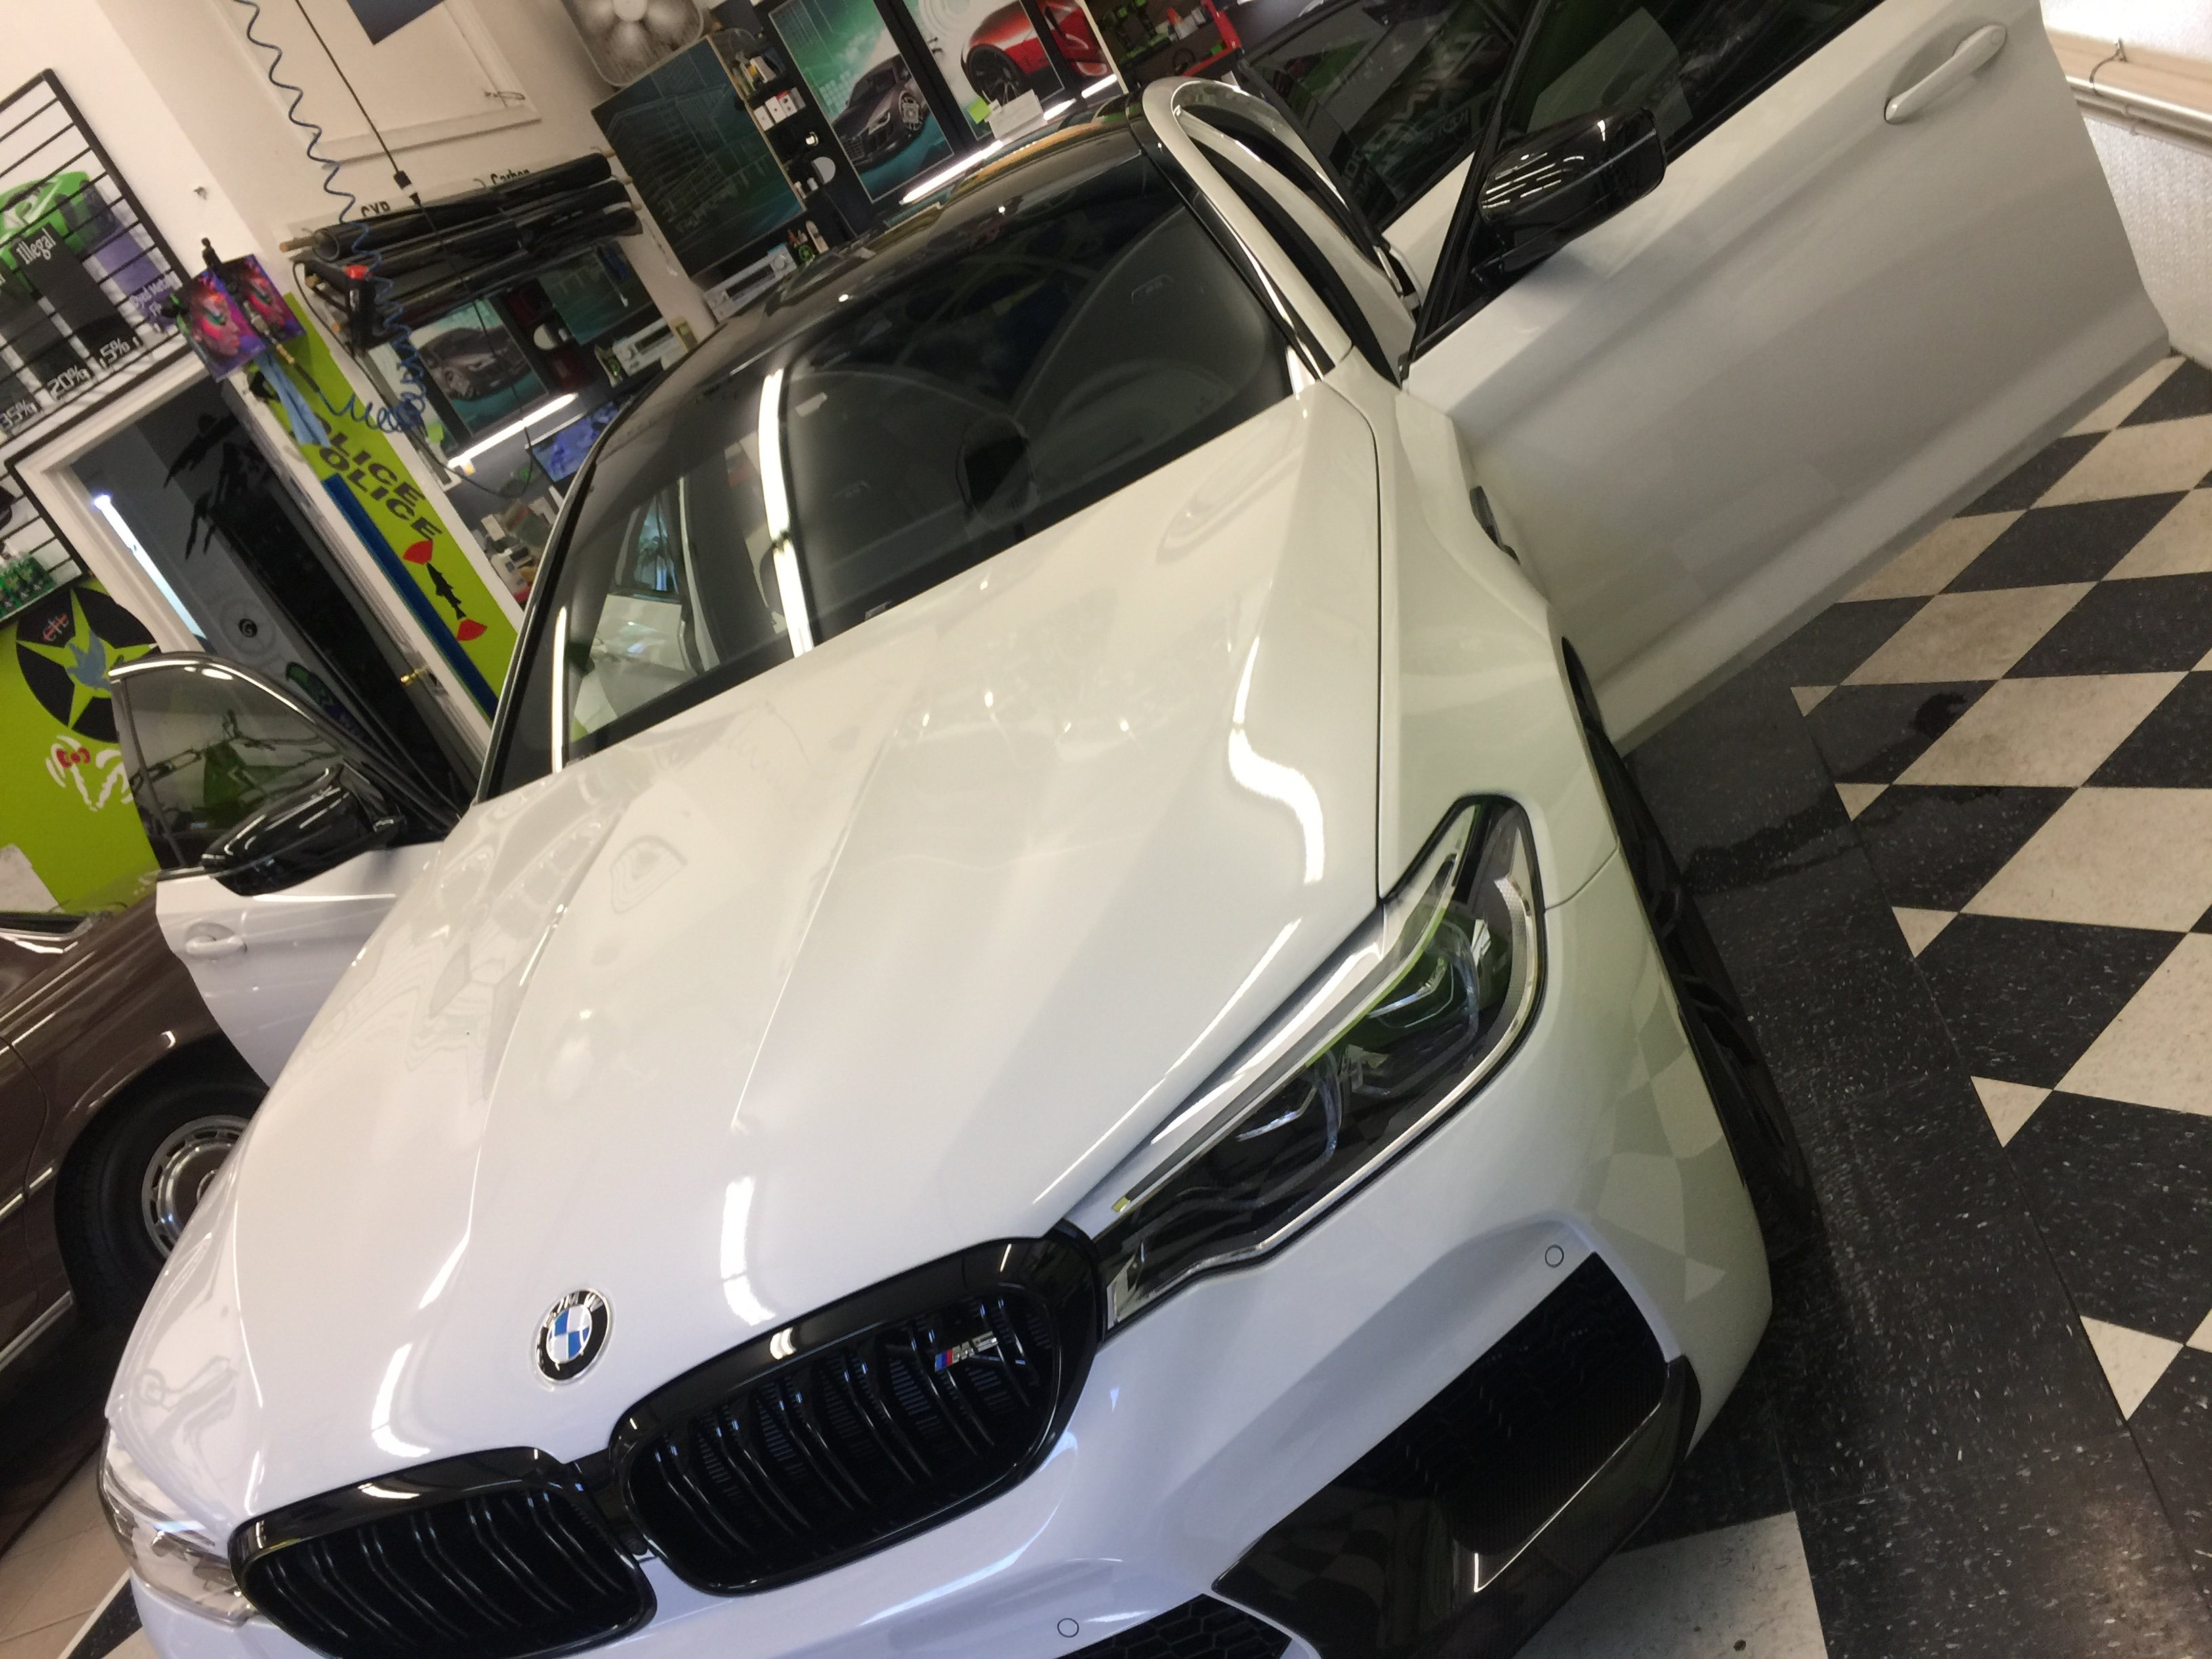 2019_BMW_M5_Mind_Blowing_Tint_Package_UV_Protection_Dark_Film_Window_Tint_Ceramic_Carbon_CXP_Film_The_Spokane_SHOP_Kon_Shiva (6).JPG